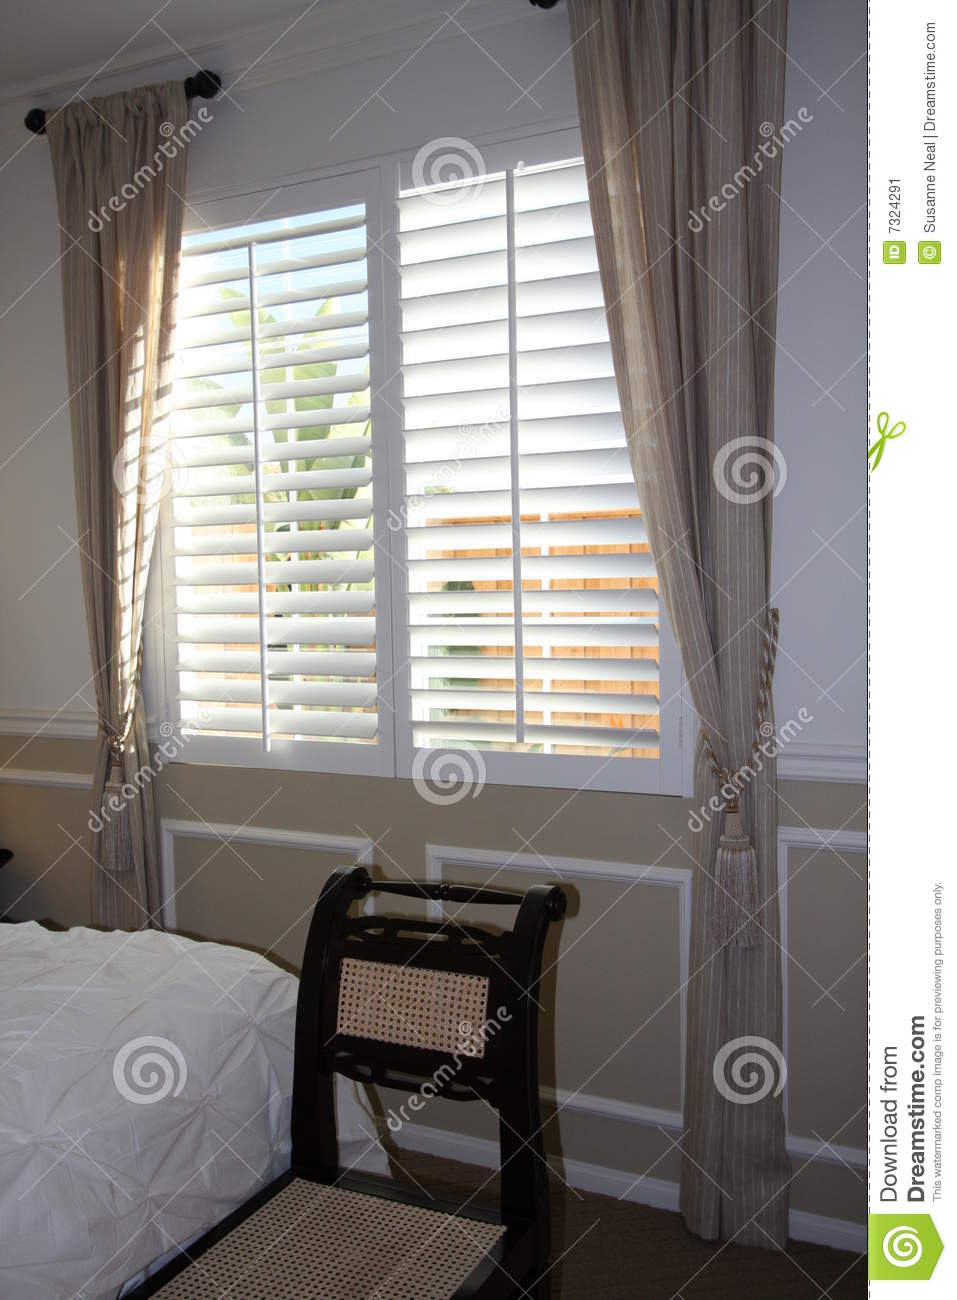 Window Treatment In Bedroom Stock Image  Image of bright